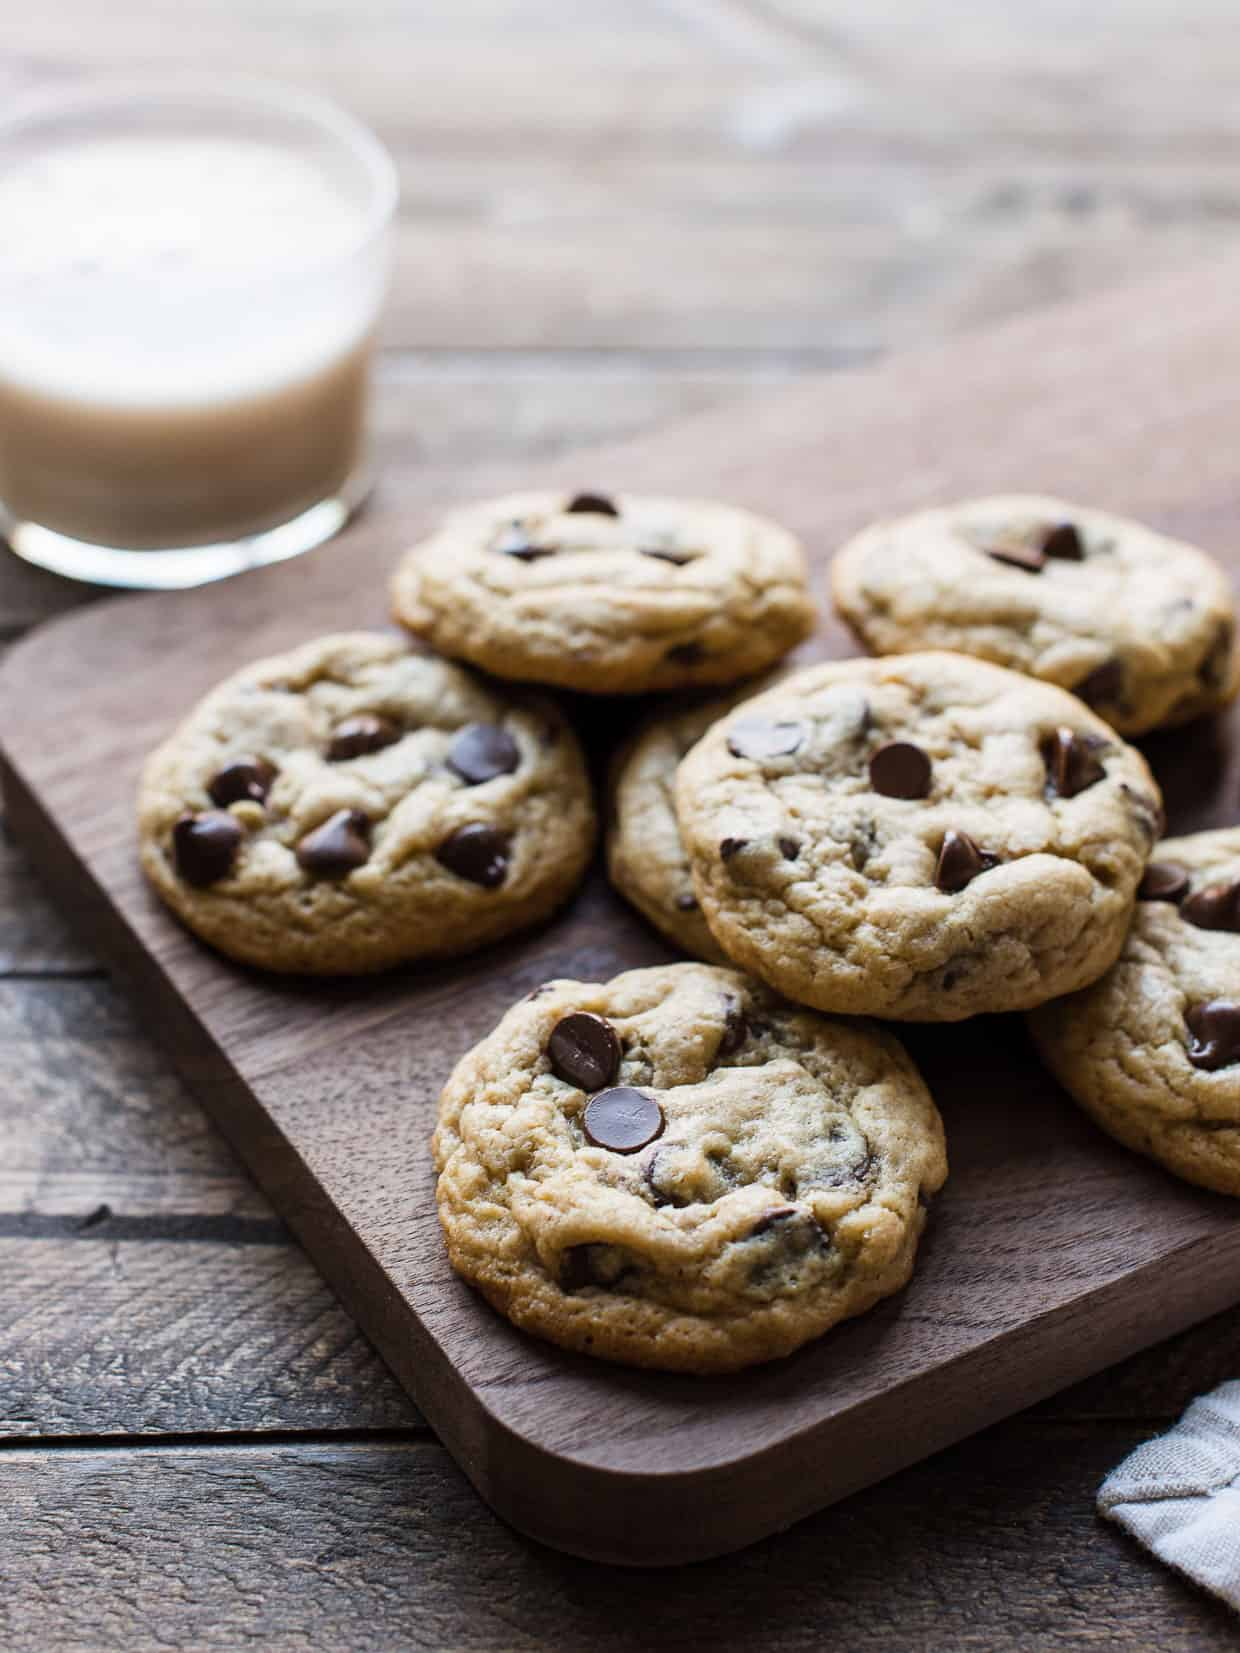 Sometimes, all you want is a chocolate chip cookies. This recipe for Cream Cheese Chocolate Chip Cookies will do the trick. #cookie #creamcheese #chocolatechip #chocolate #recipe #cookies